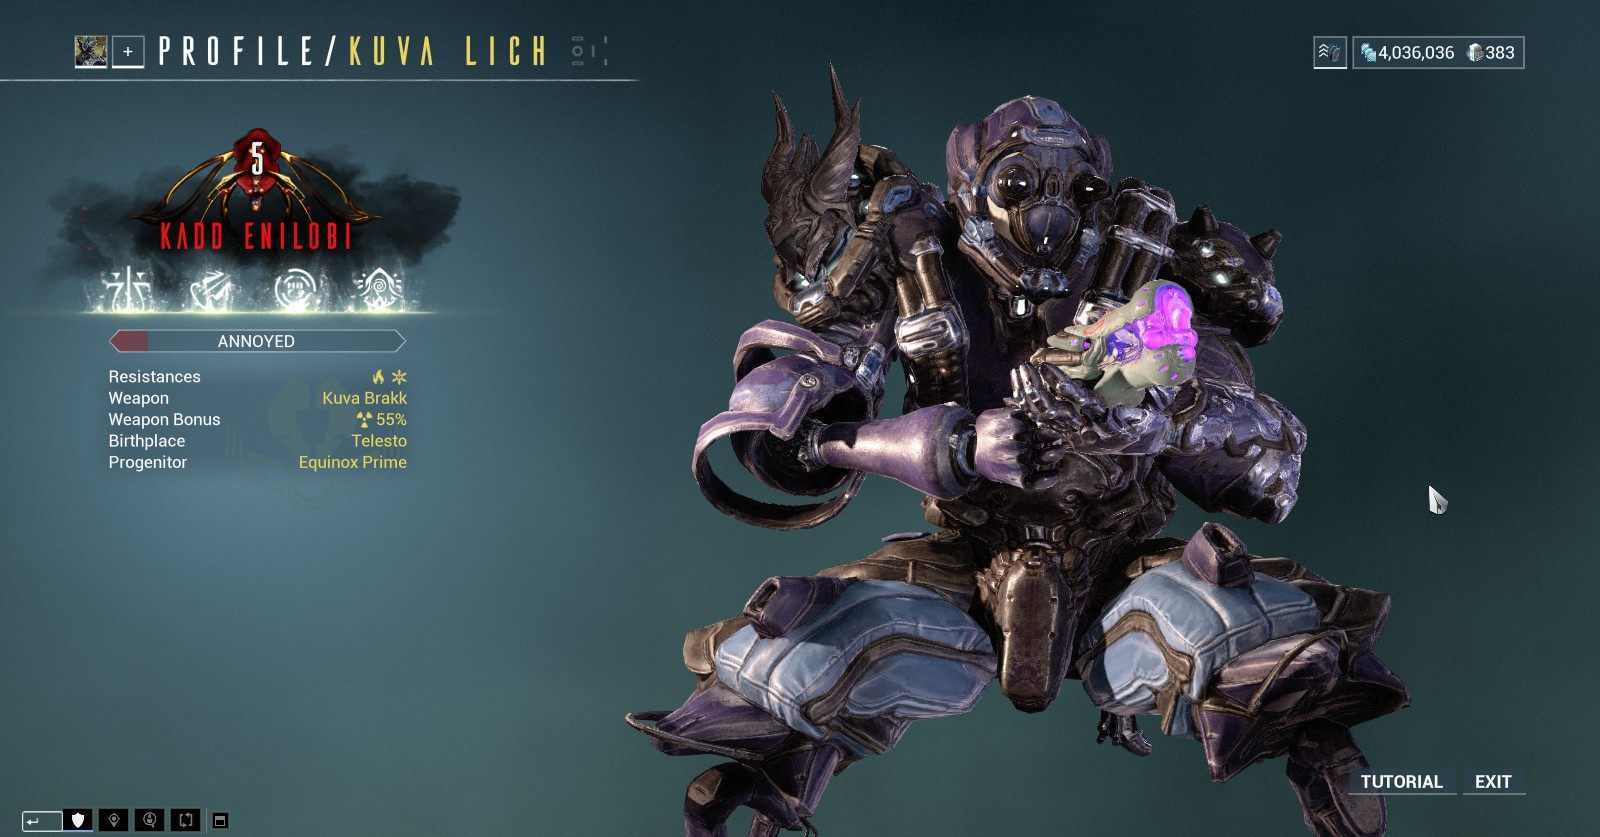 Kuva Lich With Meme Name Pc Trading Post Warframe Forums